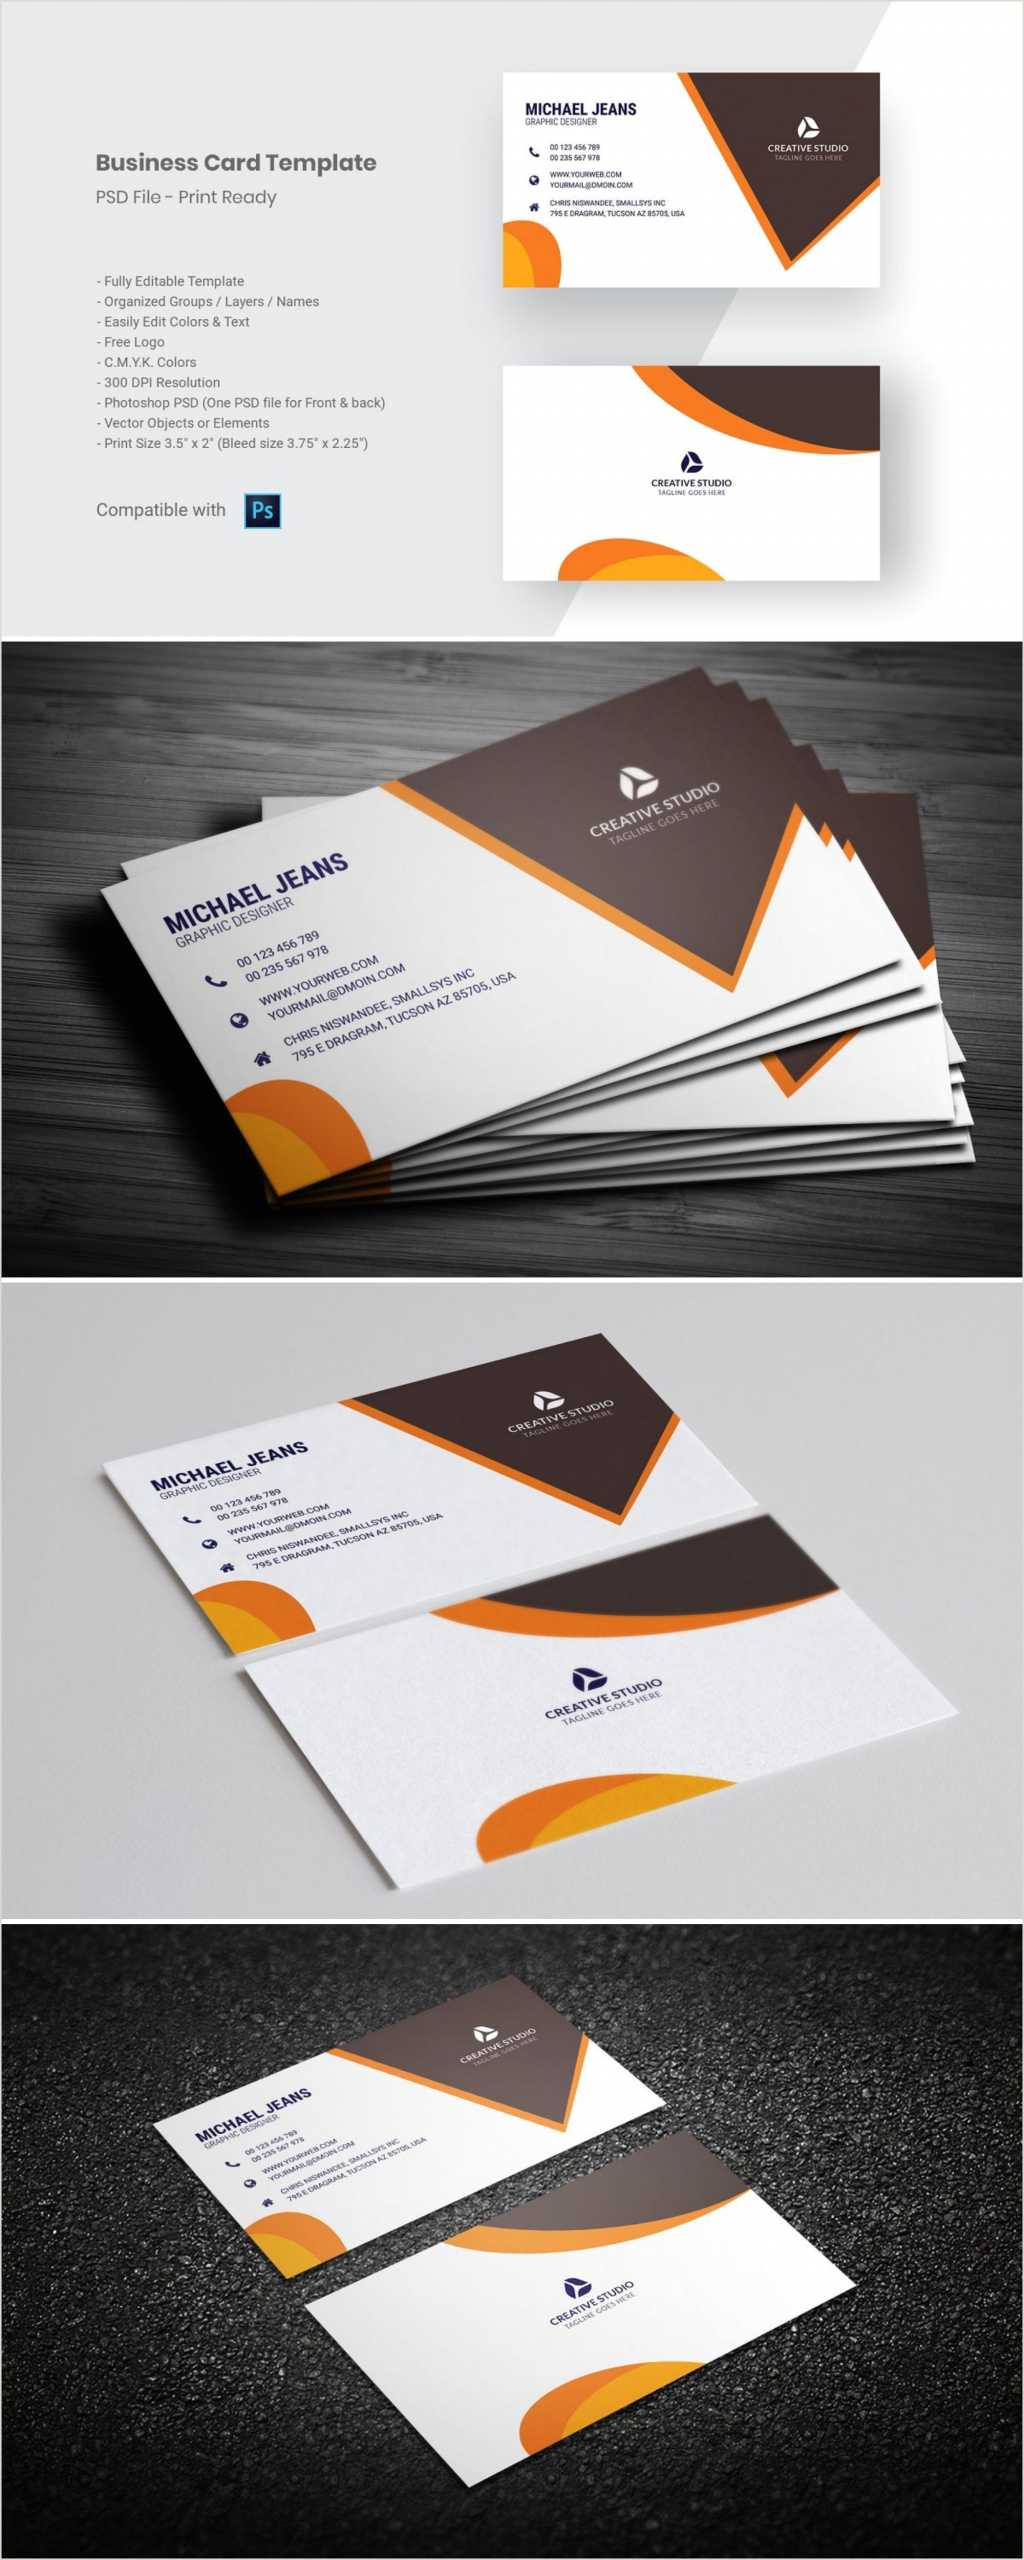 Visiting Cards Design Modern Business Card Template